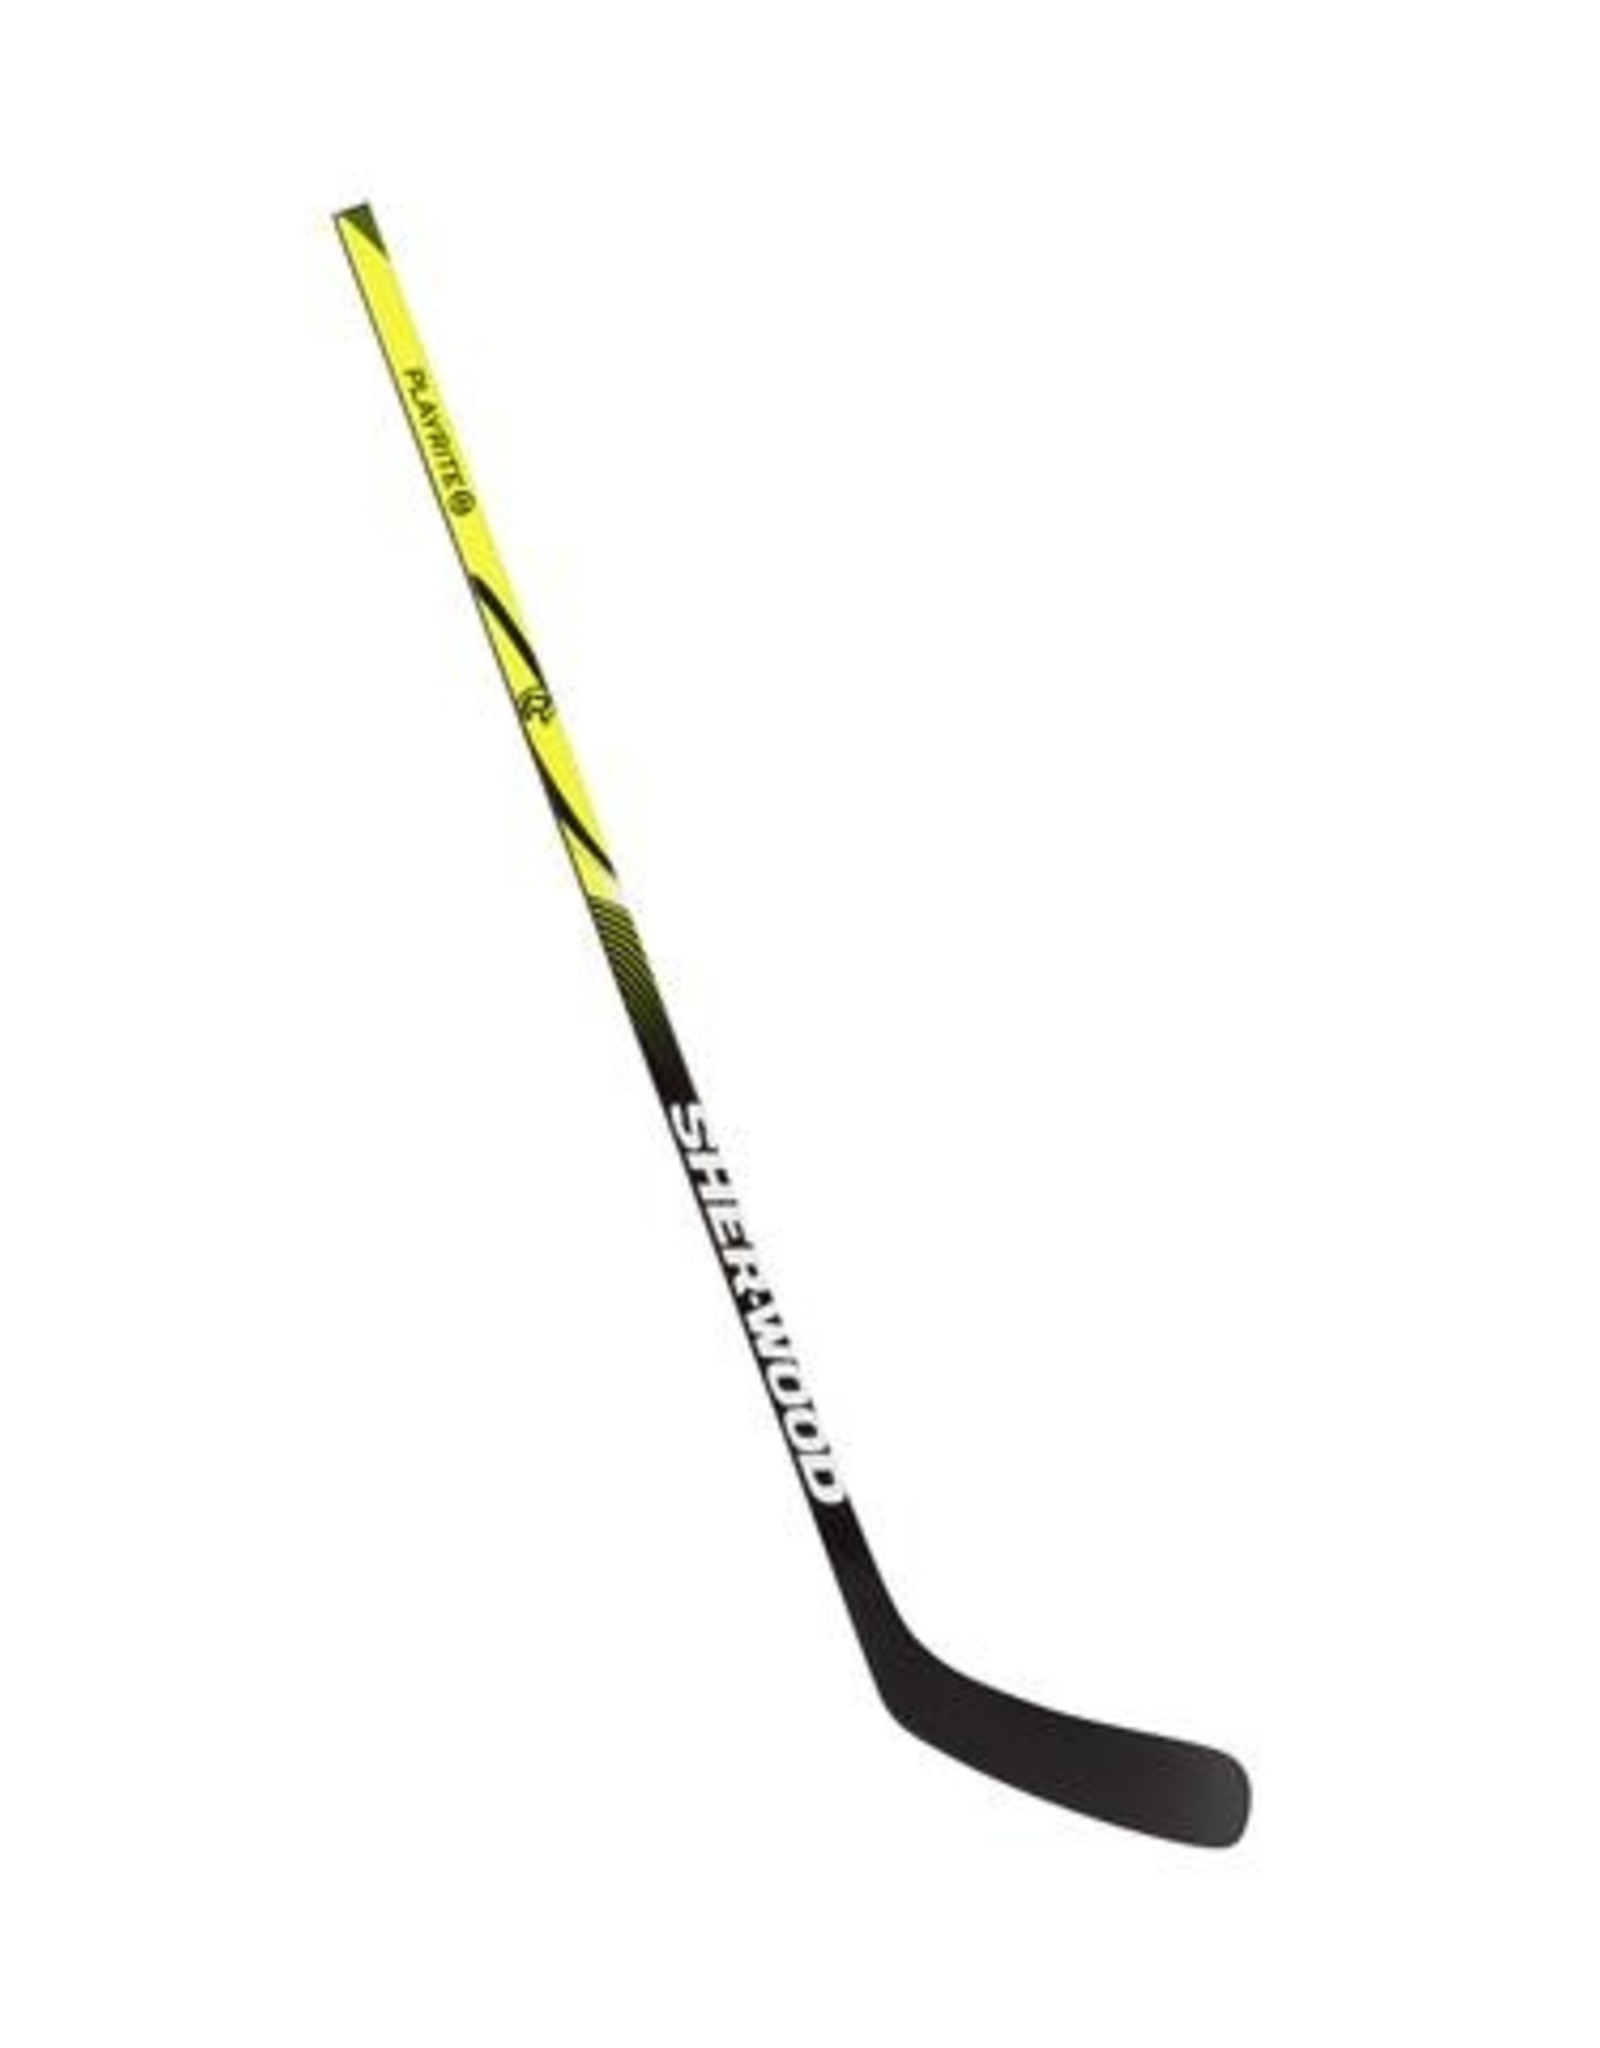 Sher-Wood BATON HOCKEY SHER-WOOD PLAYRITE 0 JR